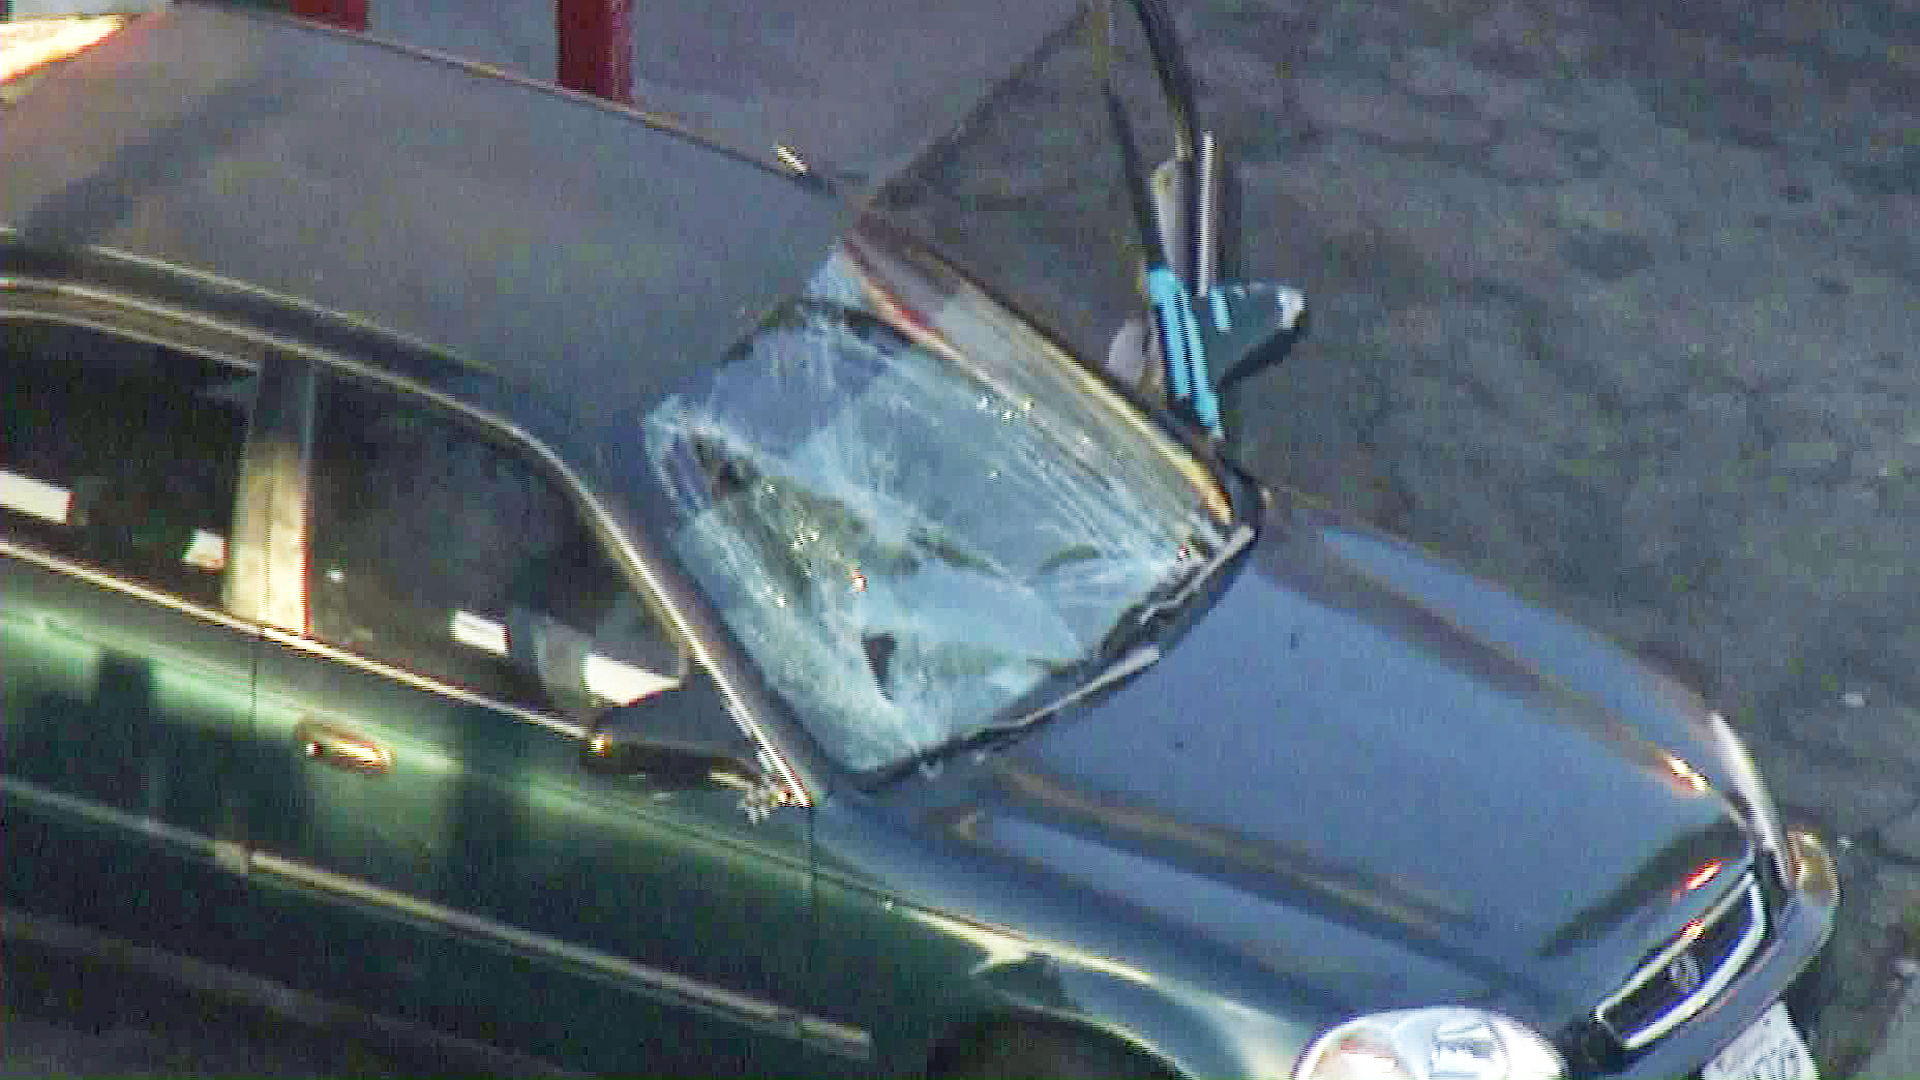 A damaged vehicle is left at the scene of a hit-and-run crash in South Los Angeles. (Credit: KTLA)